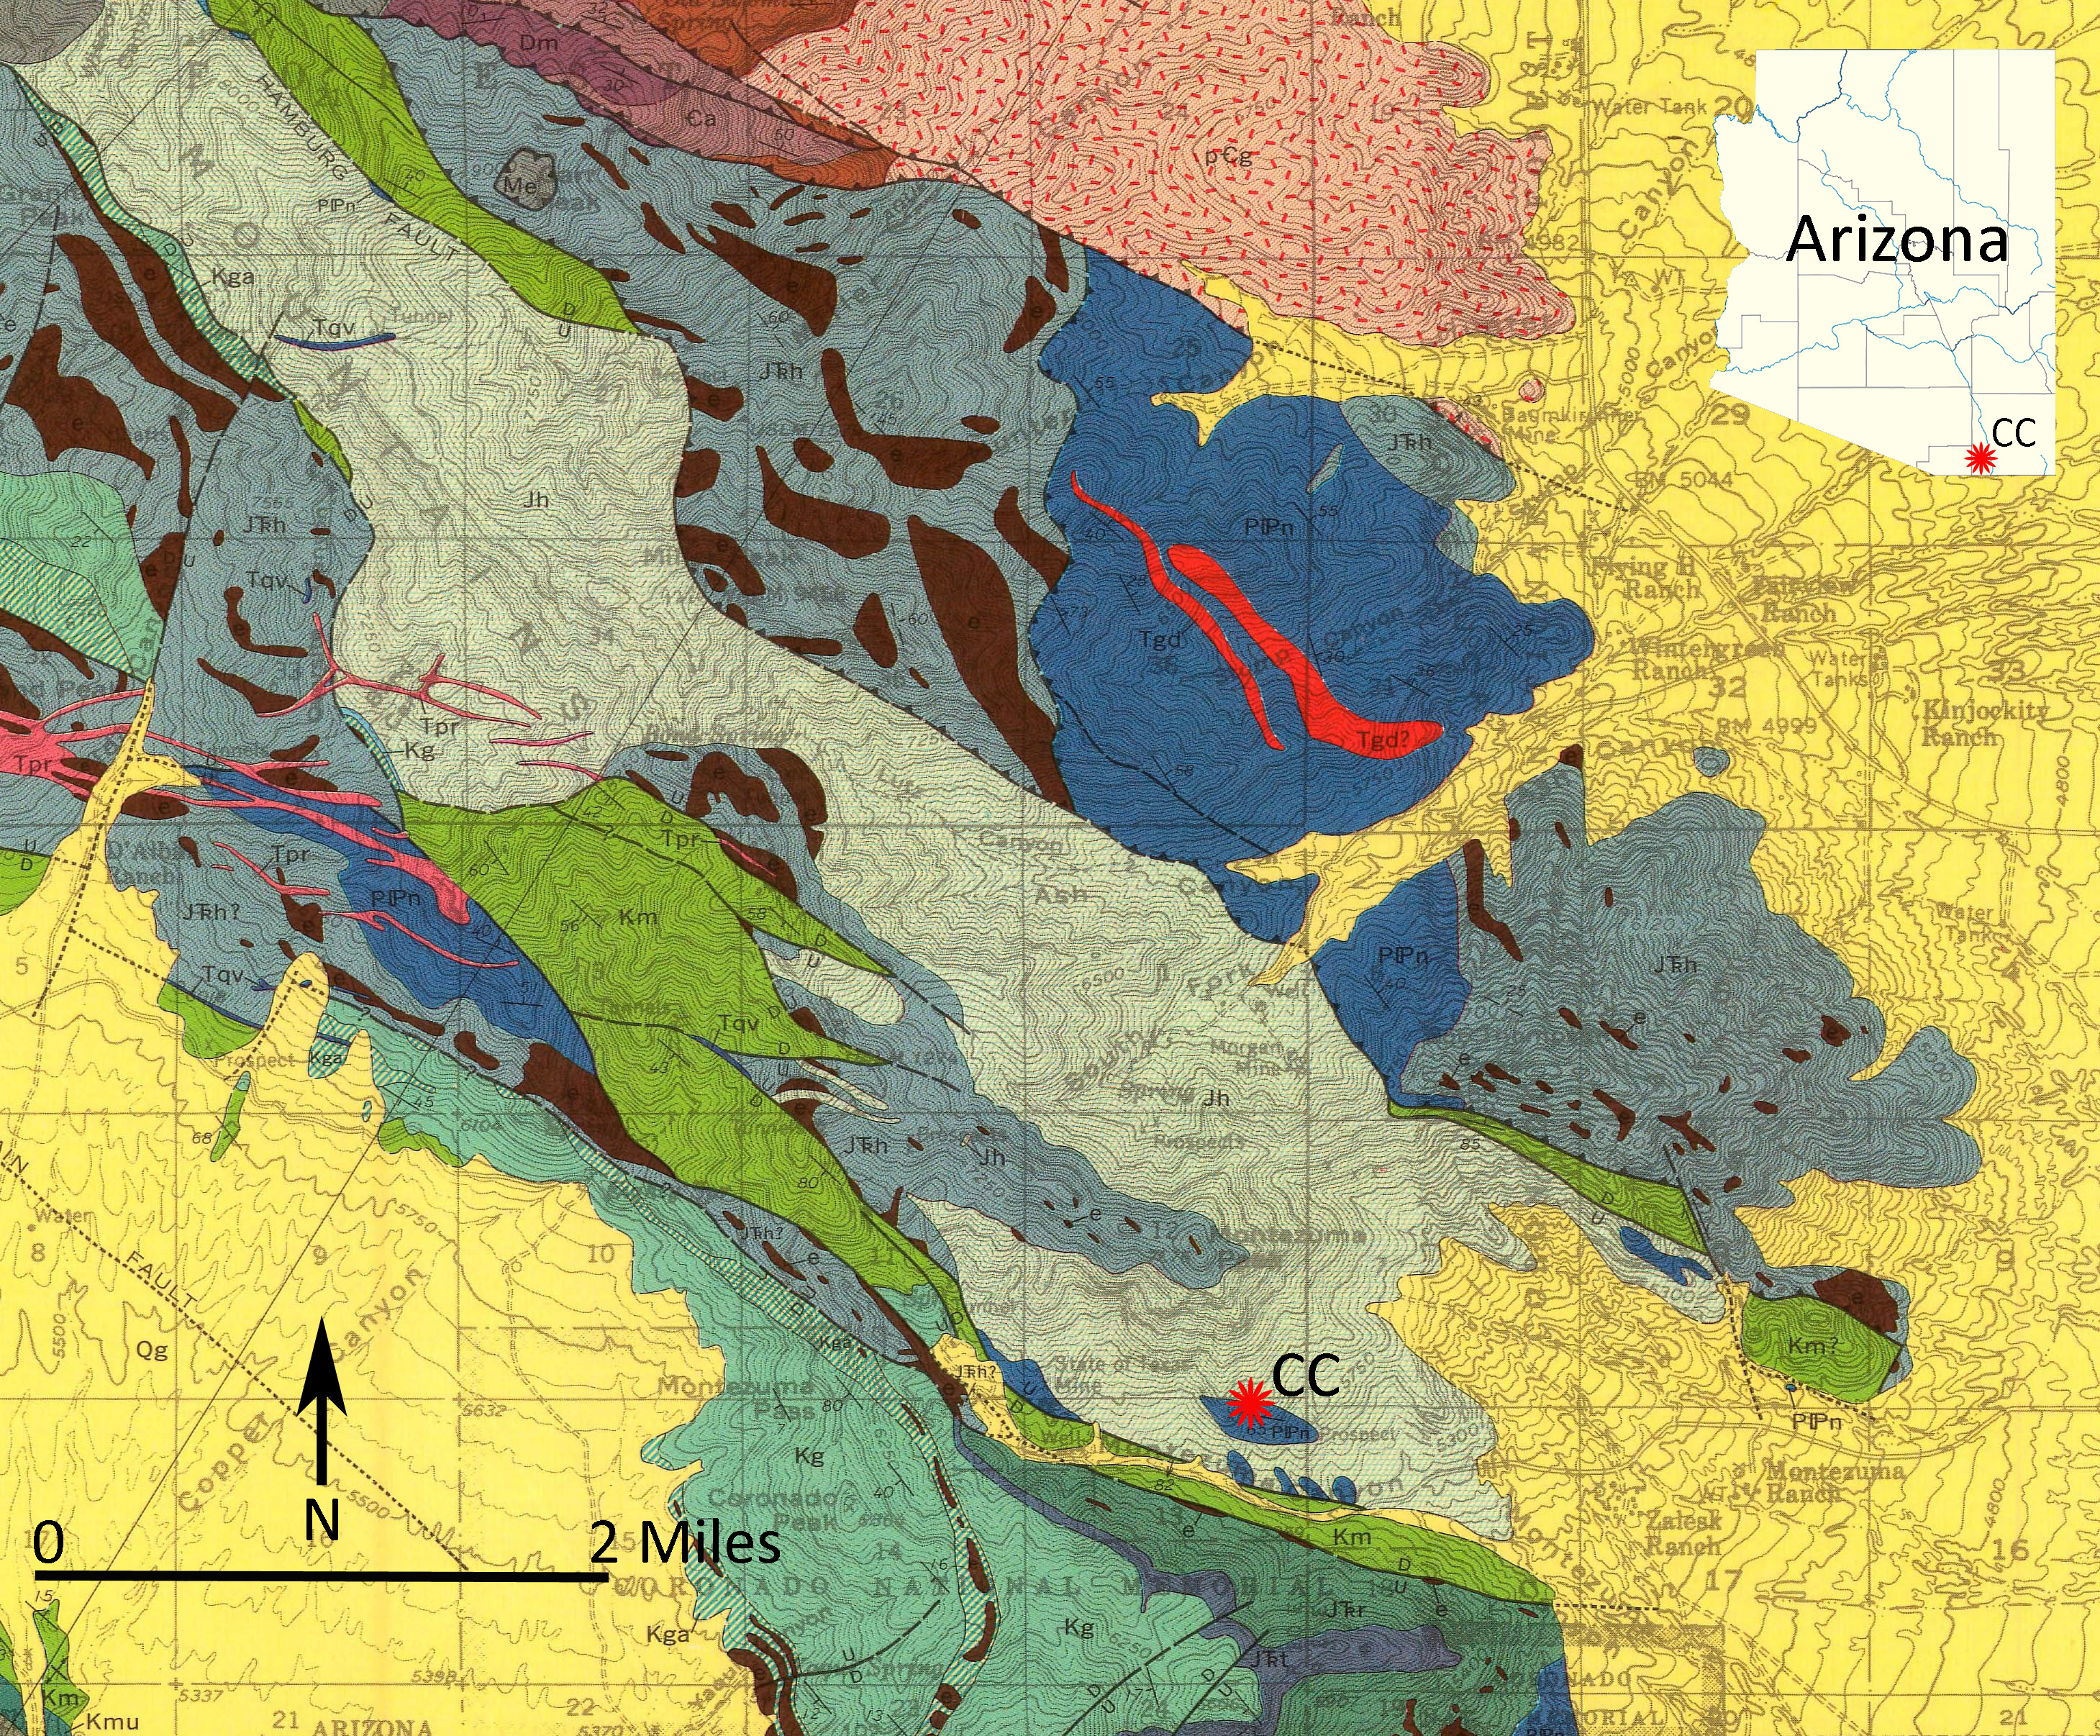 Figure 1: Map showing the geology (Hayes and Raup, 1968) and location of Coronado Cave (CC) in southwestern Cochise County, Arizona.